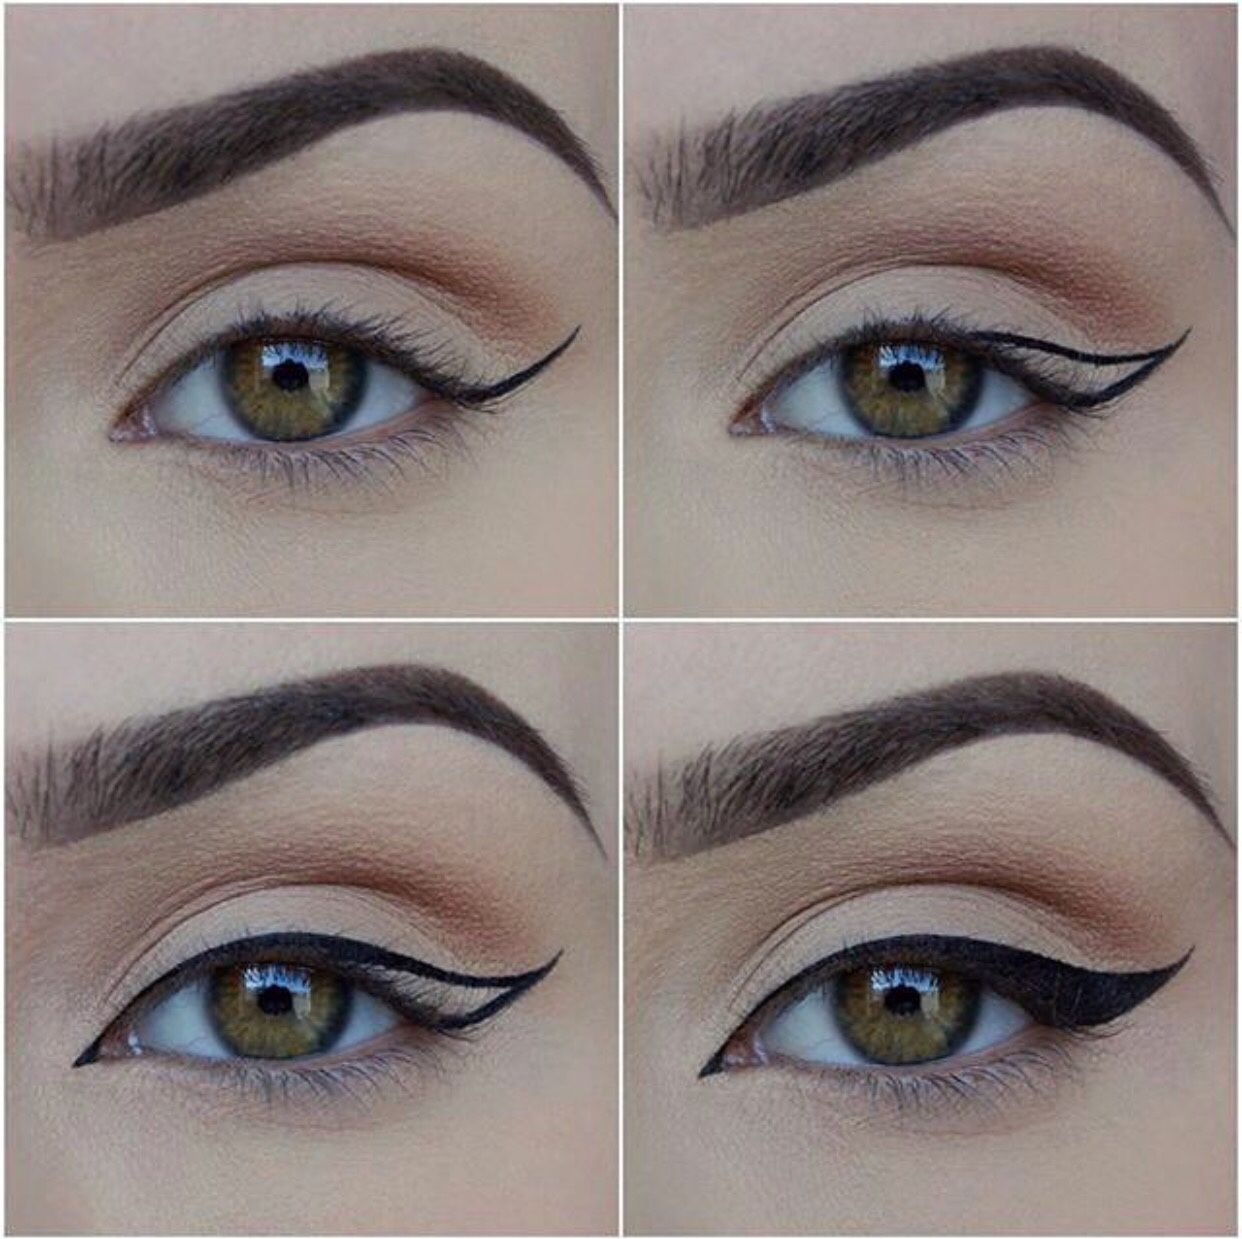 30 pictures that will let you finally exhale brows makeup and eye 30 pictures that will let you finally exhale winged eyeliner trickscat eyeliner tutorialhow baditri Image collections